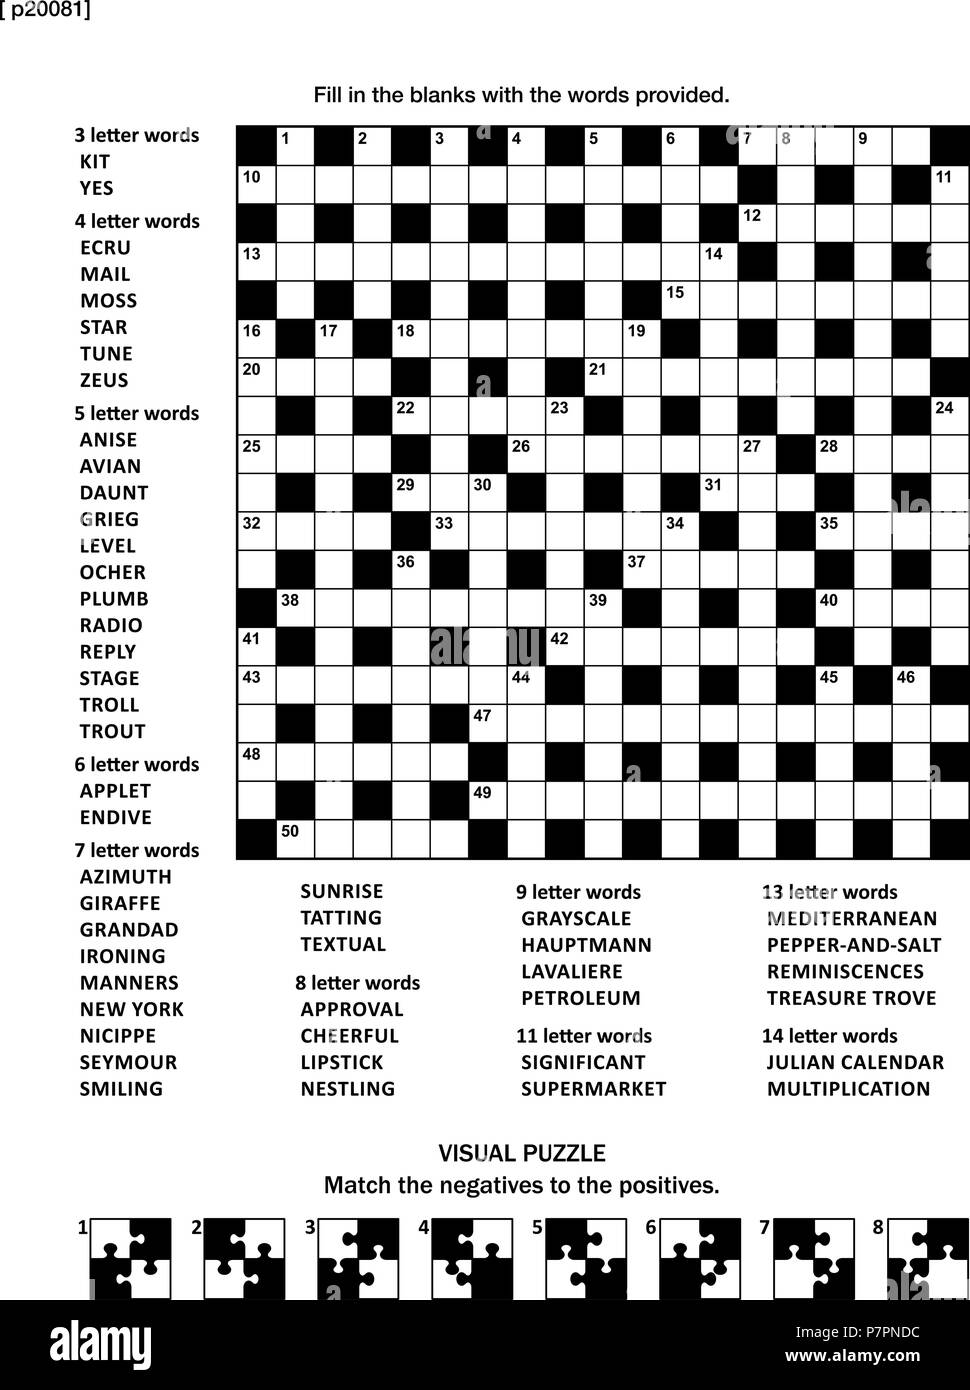 Puzzle Page With Two Puzzles 19x19 Criss Cross Kriss Kross Fill In The Blanks Crossword Word Game English Language And Abstract Visual